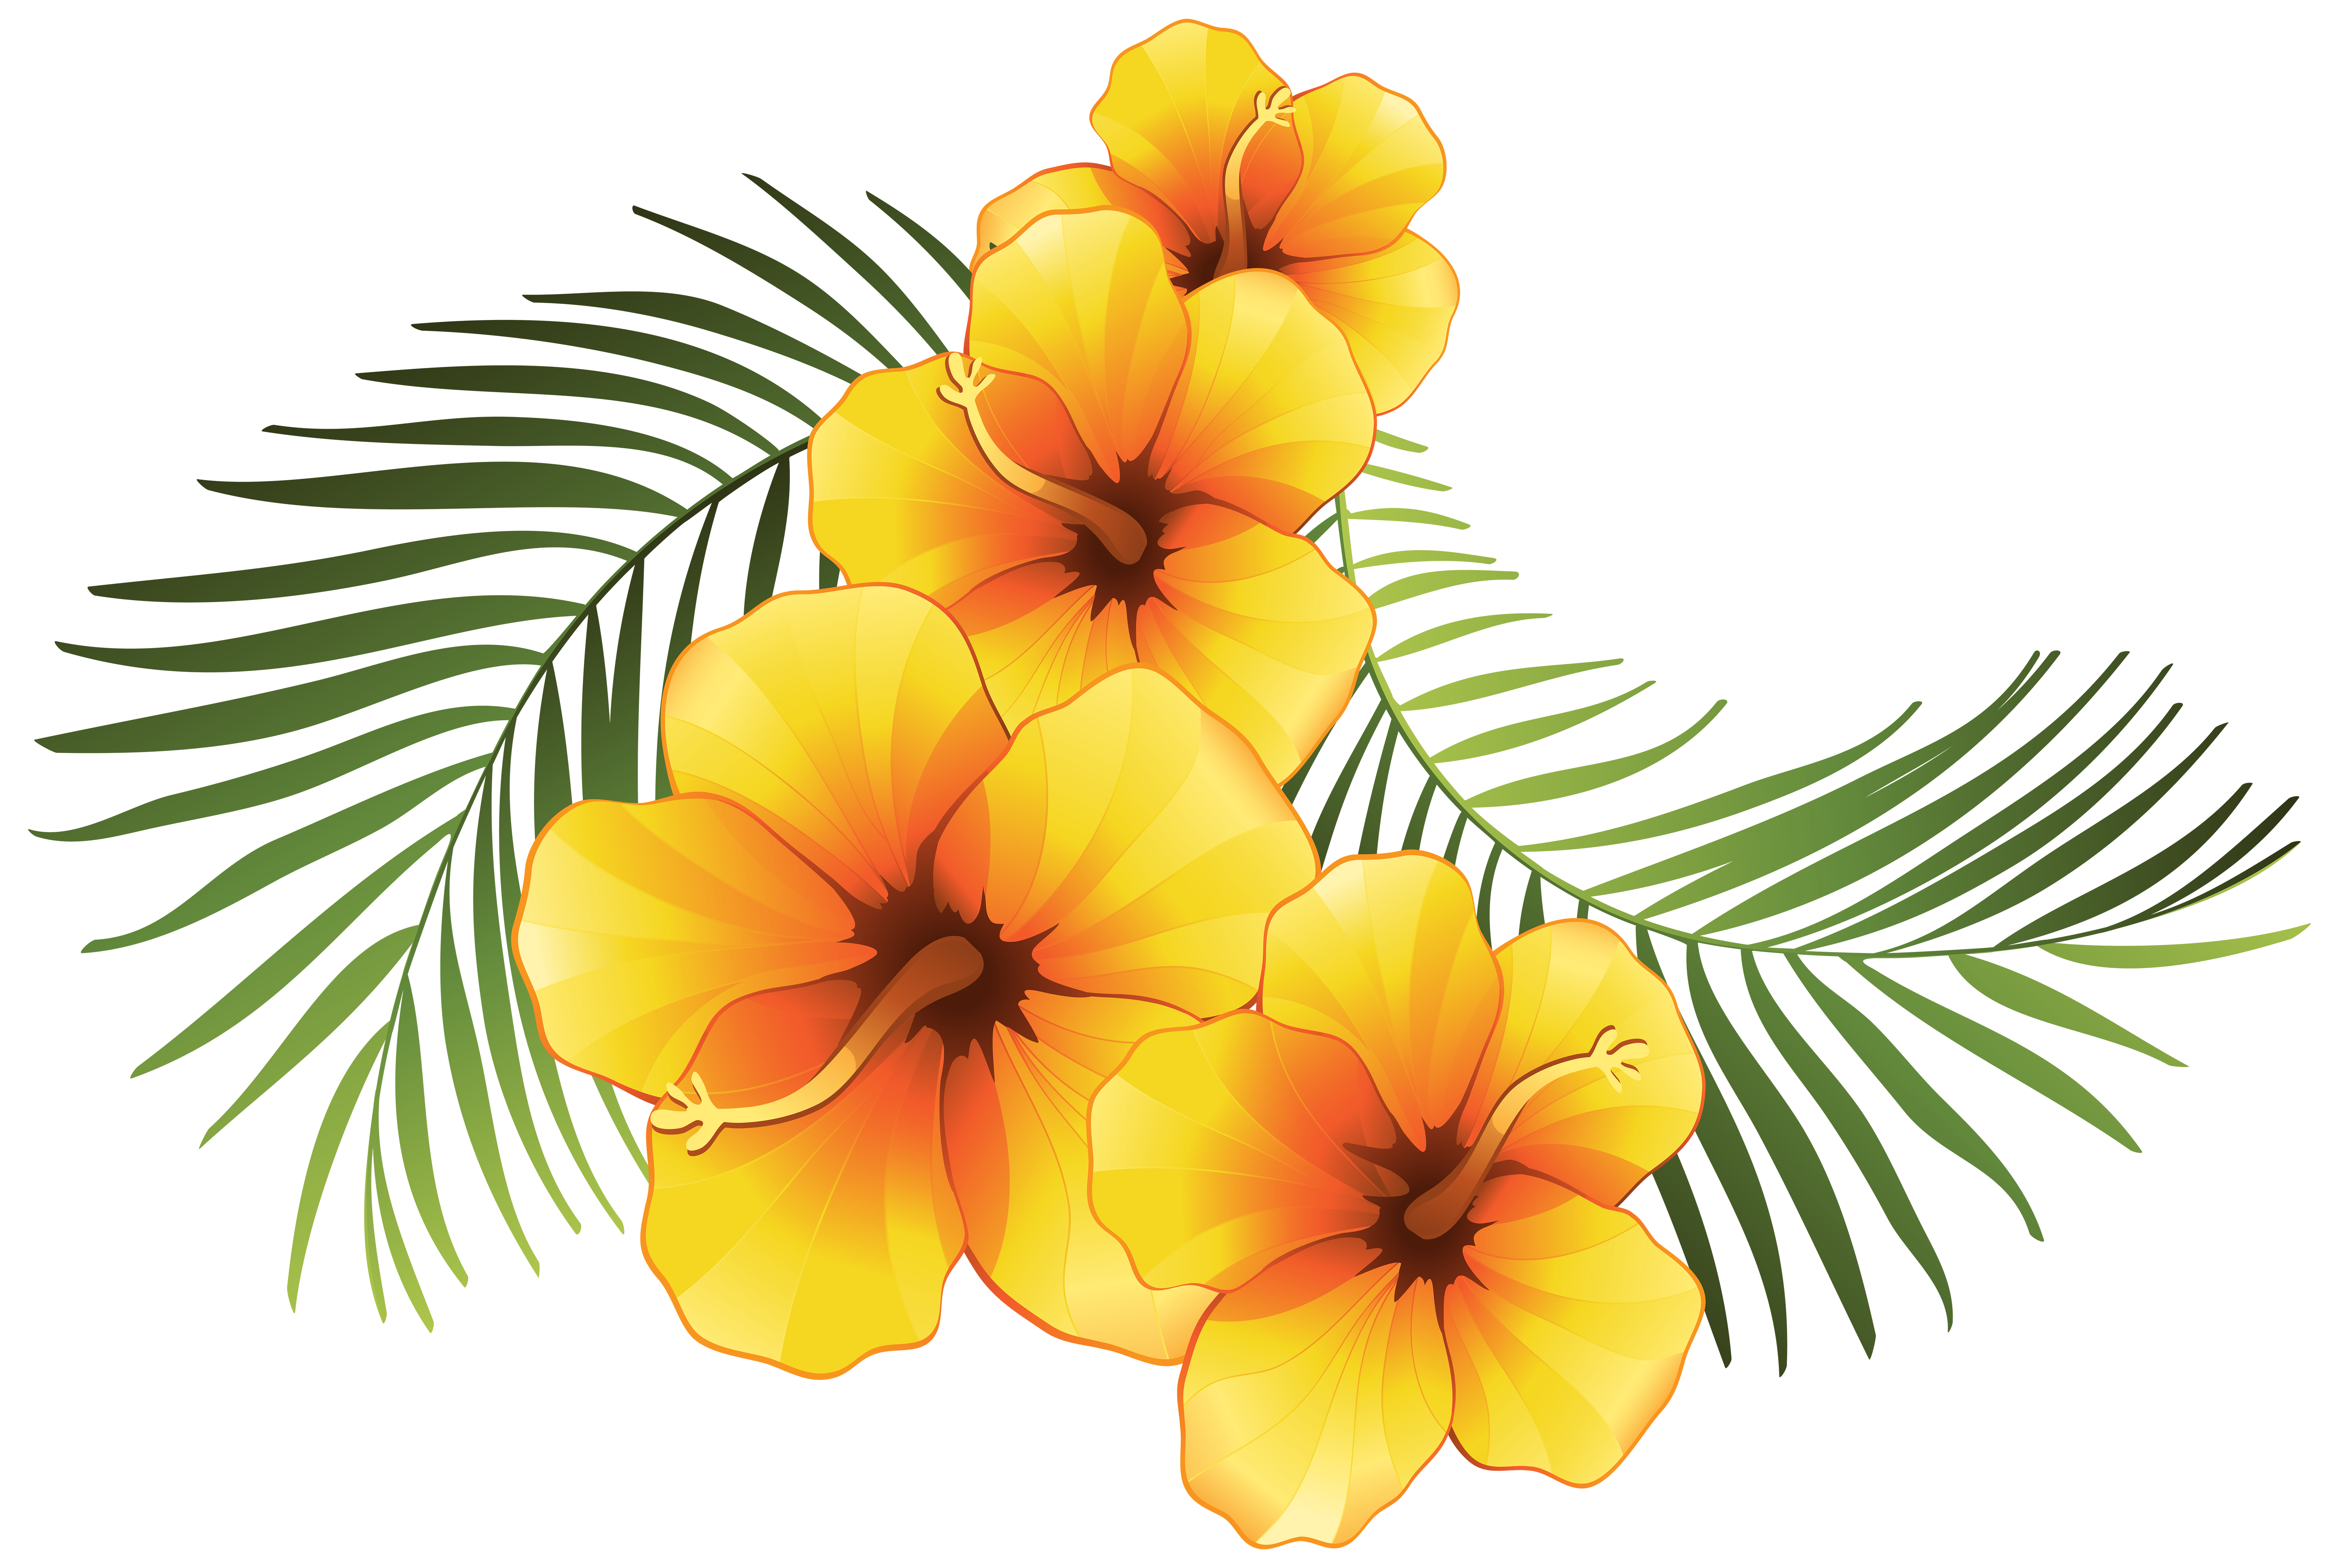 Floral Clipart At Getdrawings Free For Personal Use Floral